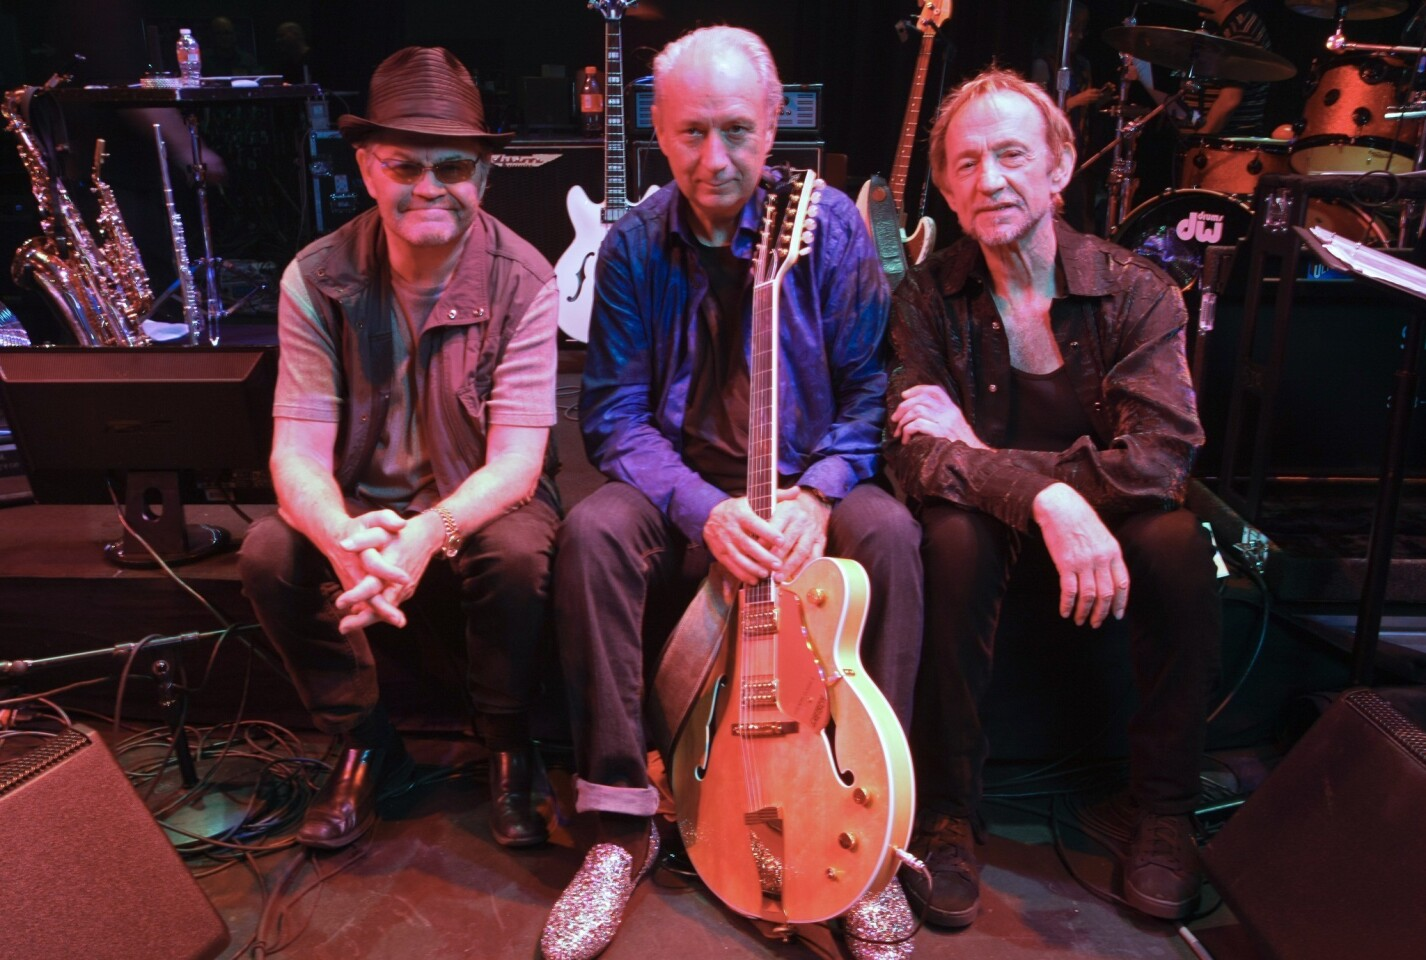 Micky Dolenz, Mike Nesmith and Peter Tork after a rehearsal concert kicking off their 2012 reunion tour.